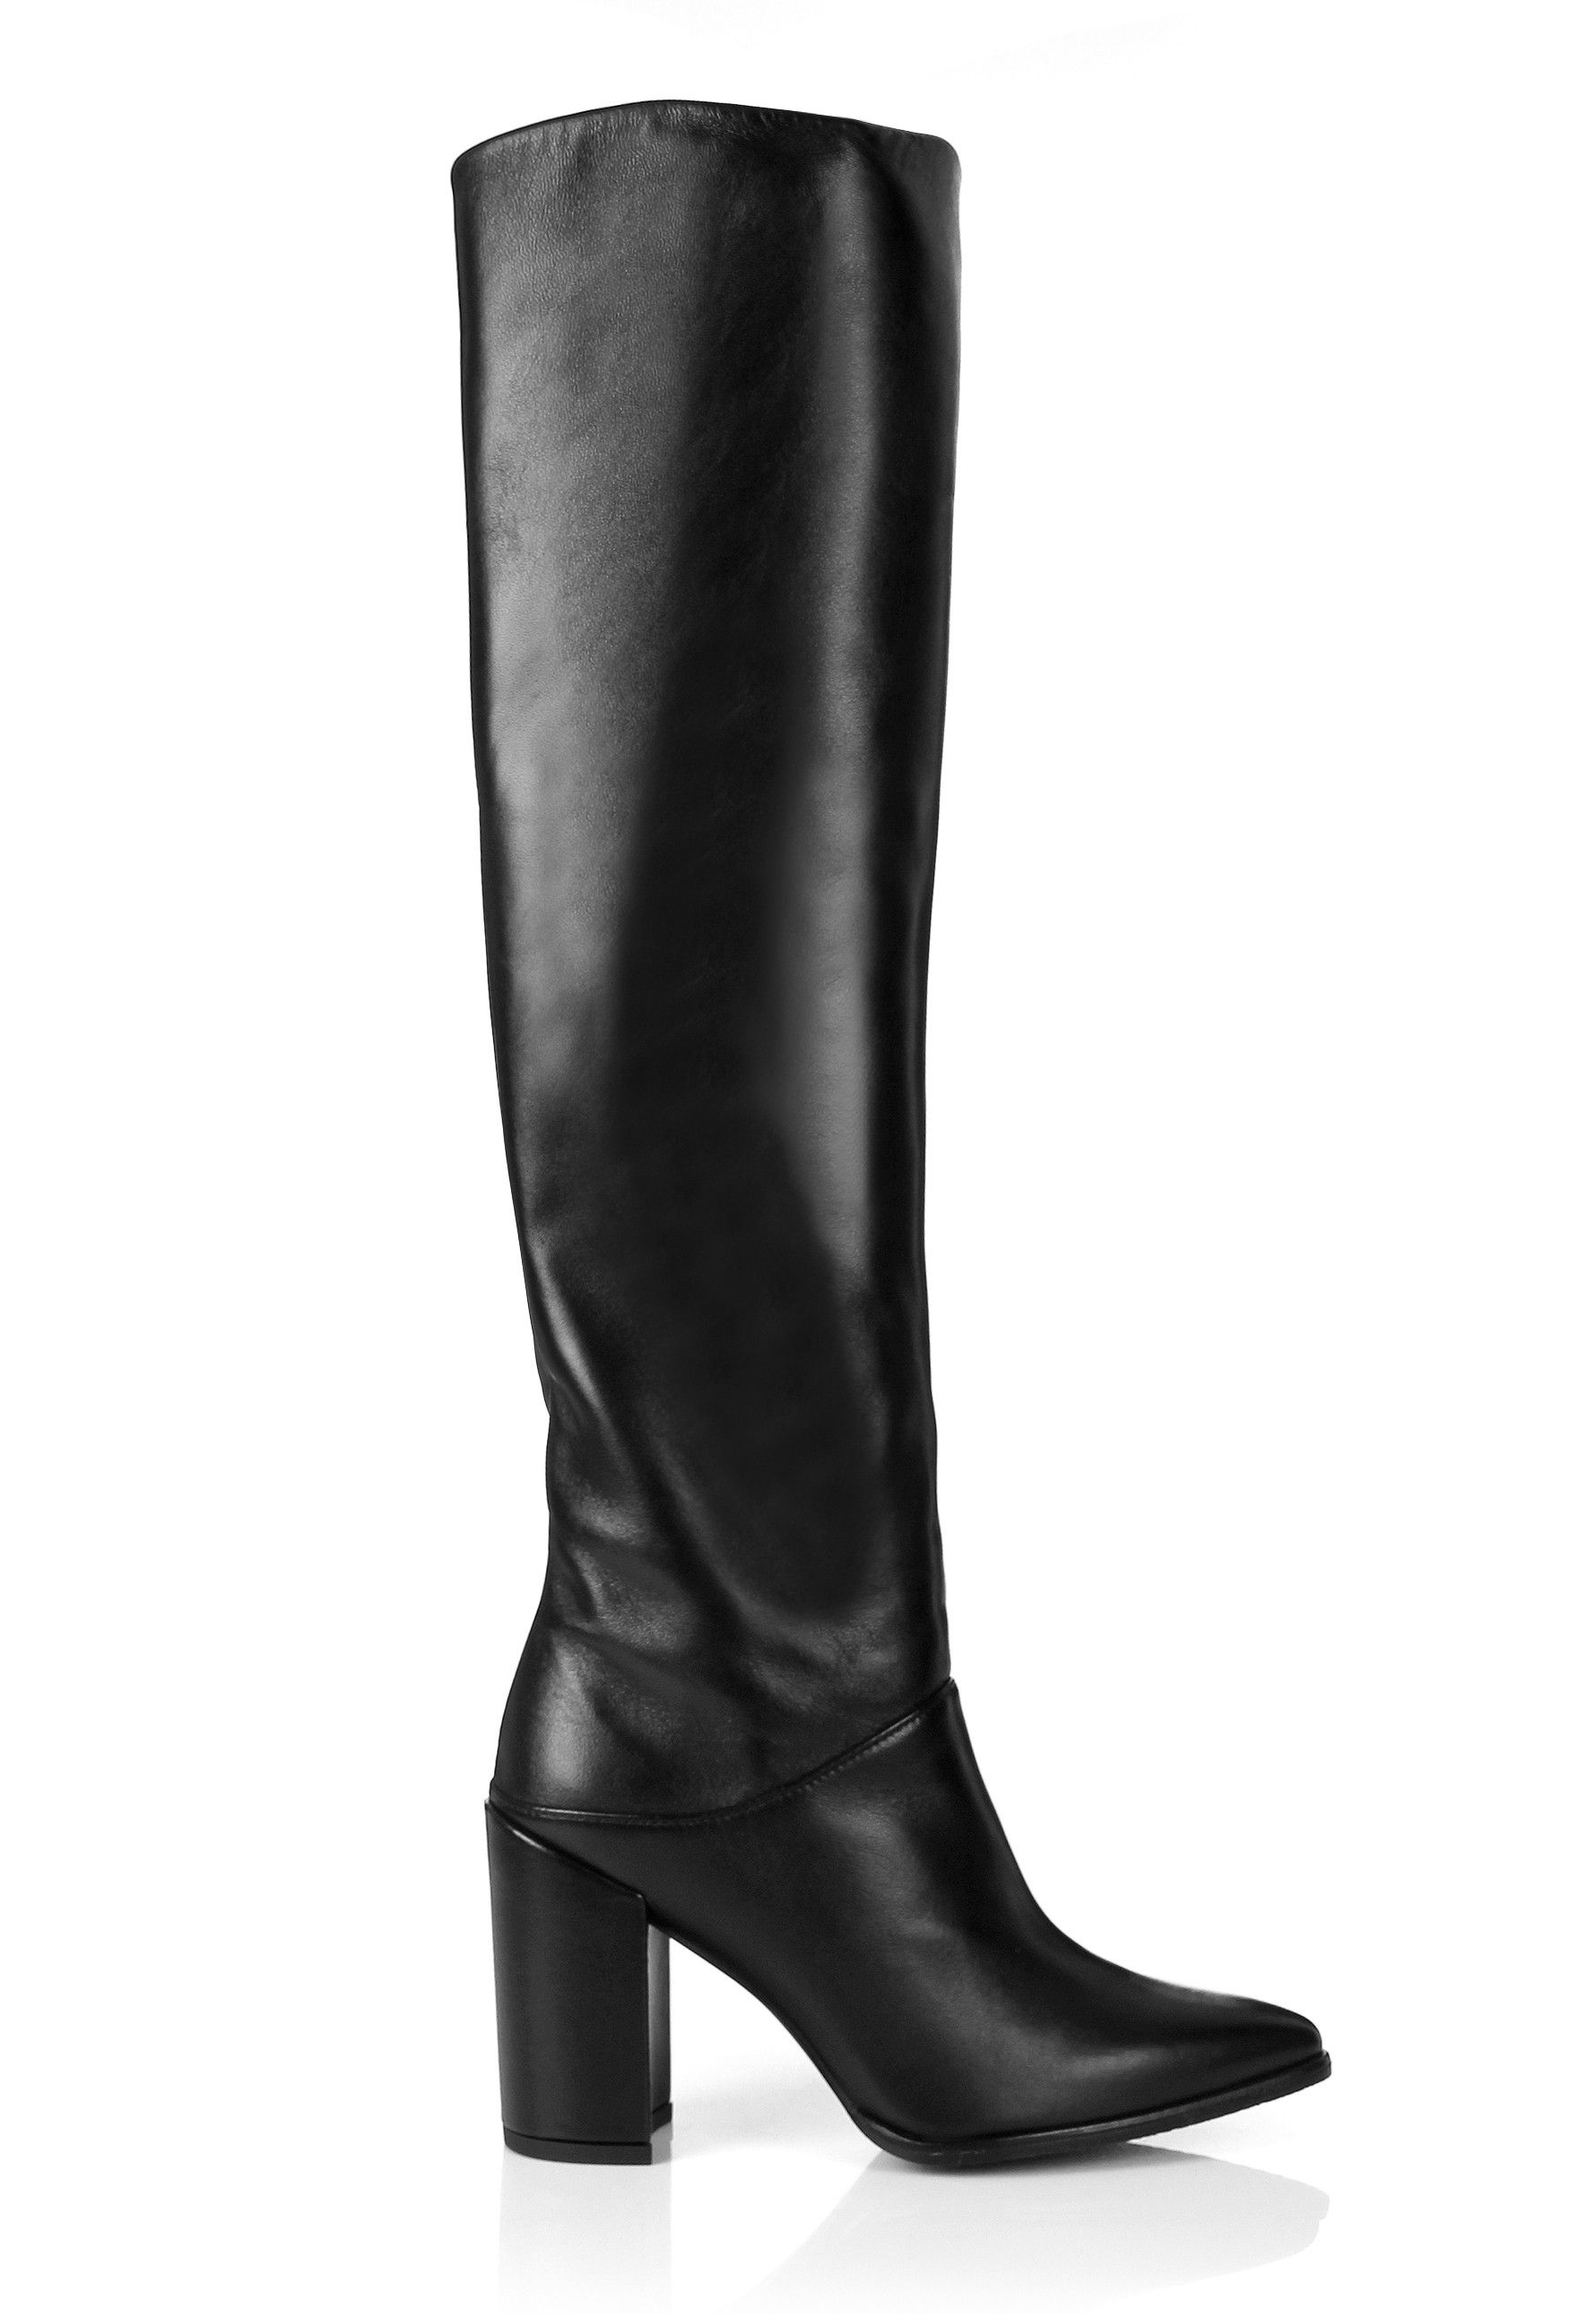 Stuart Weitzman Designer Shoes, Scrunchy Nappa High Heel Boot